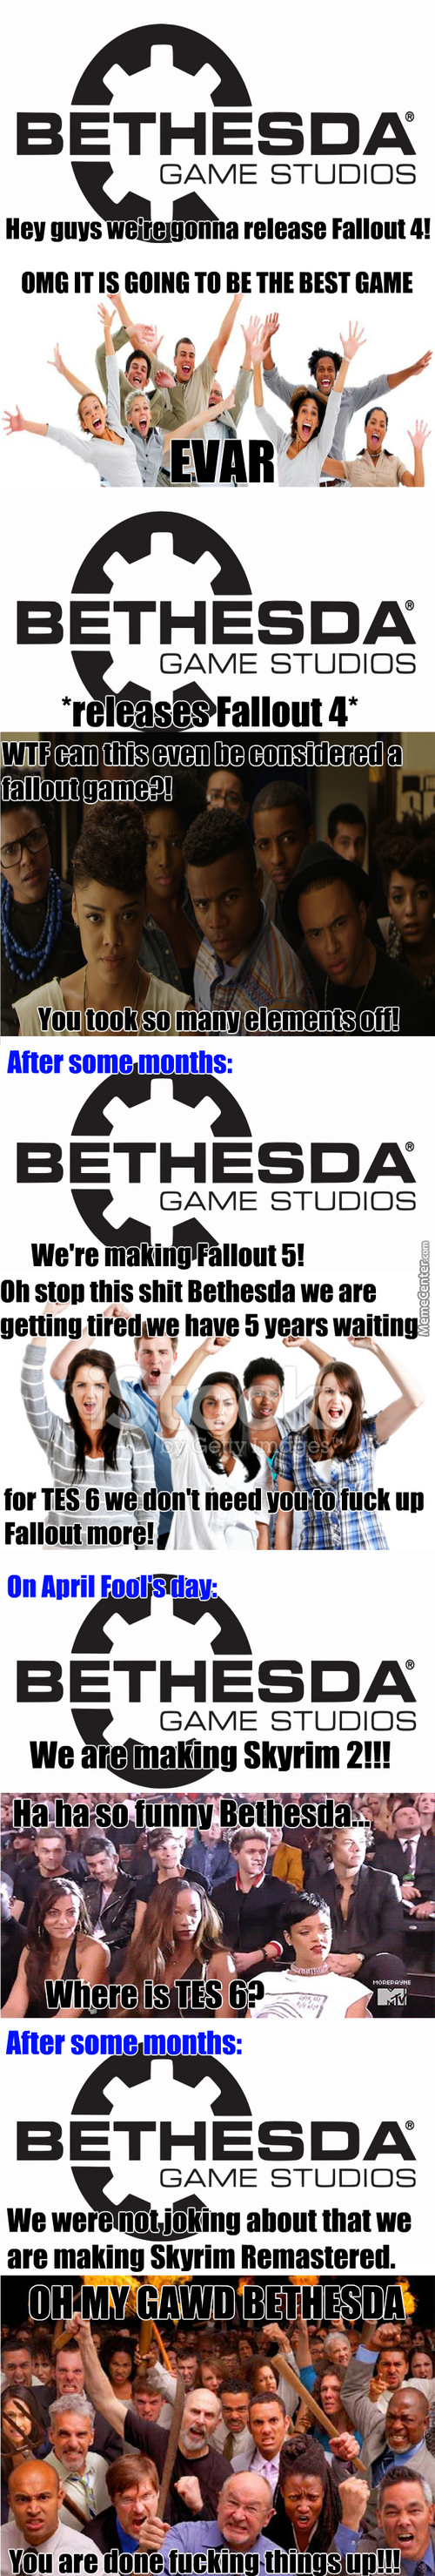 Does Bethesda Even Know What It's Doing Anymore?!